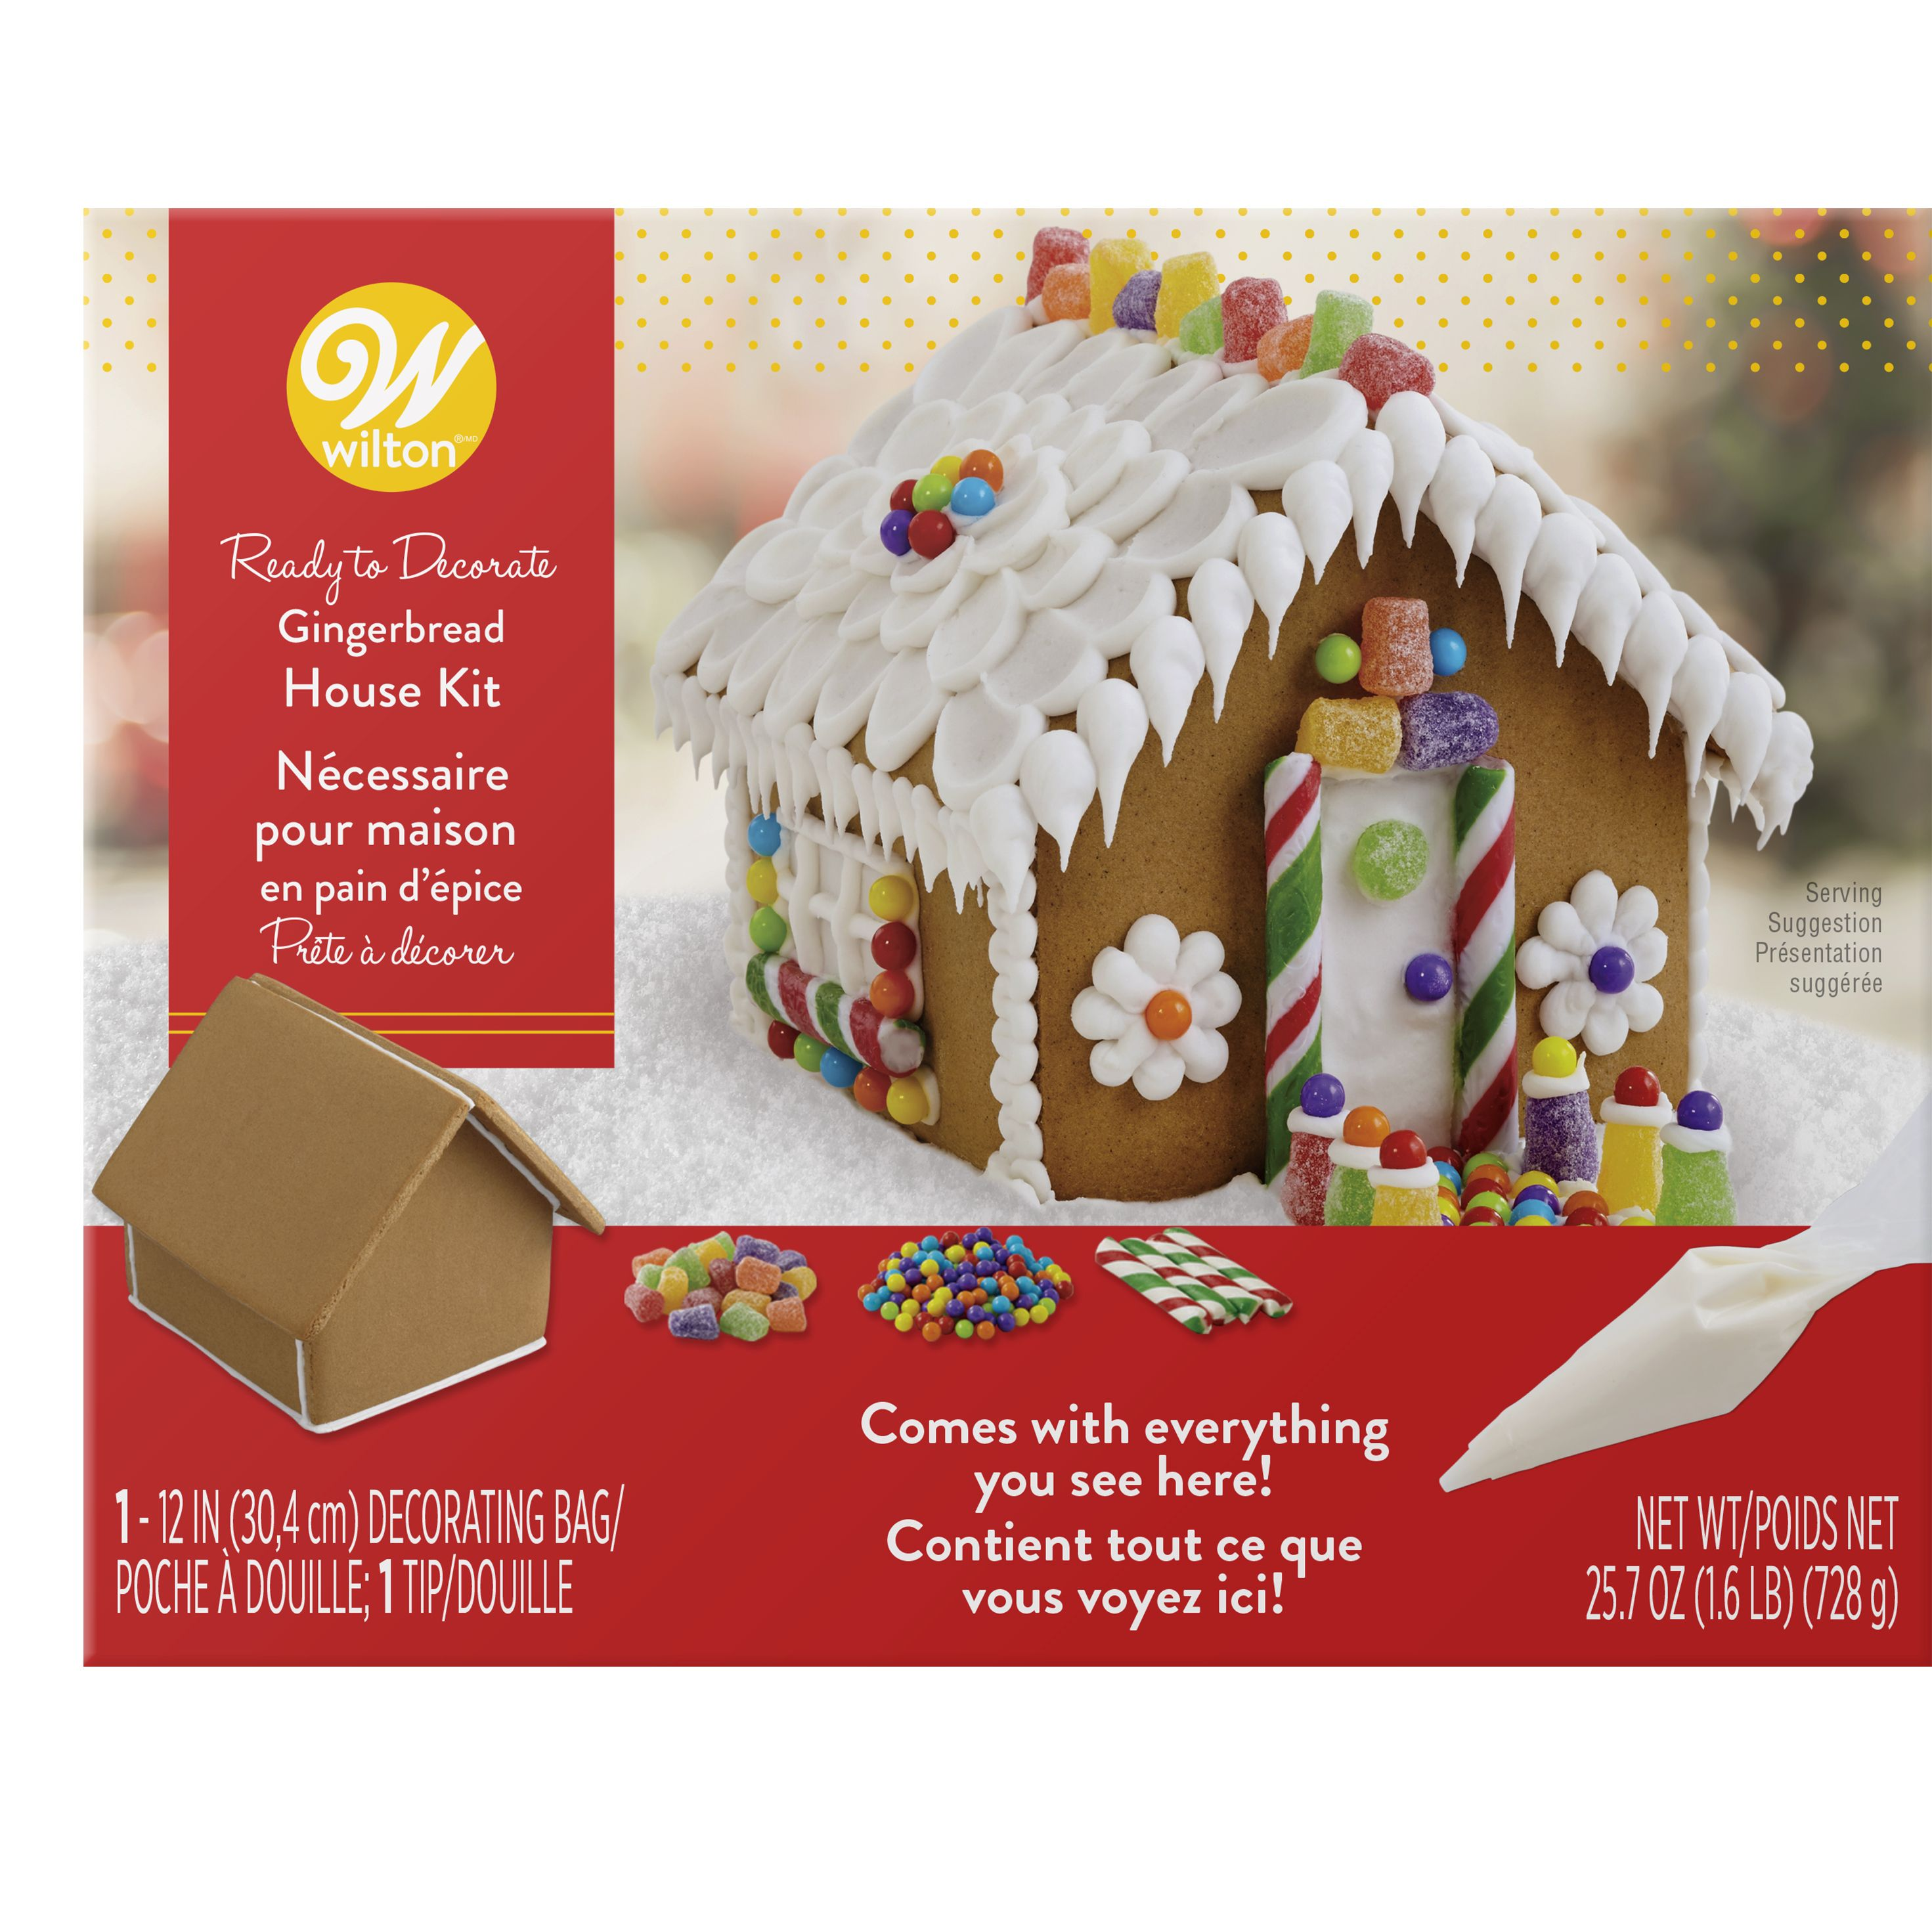 Food Gingerbread House Decorations Gingerbread House Kits